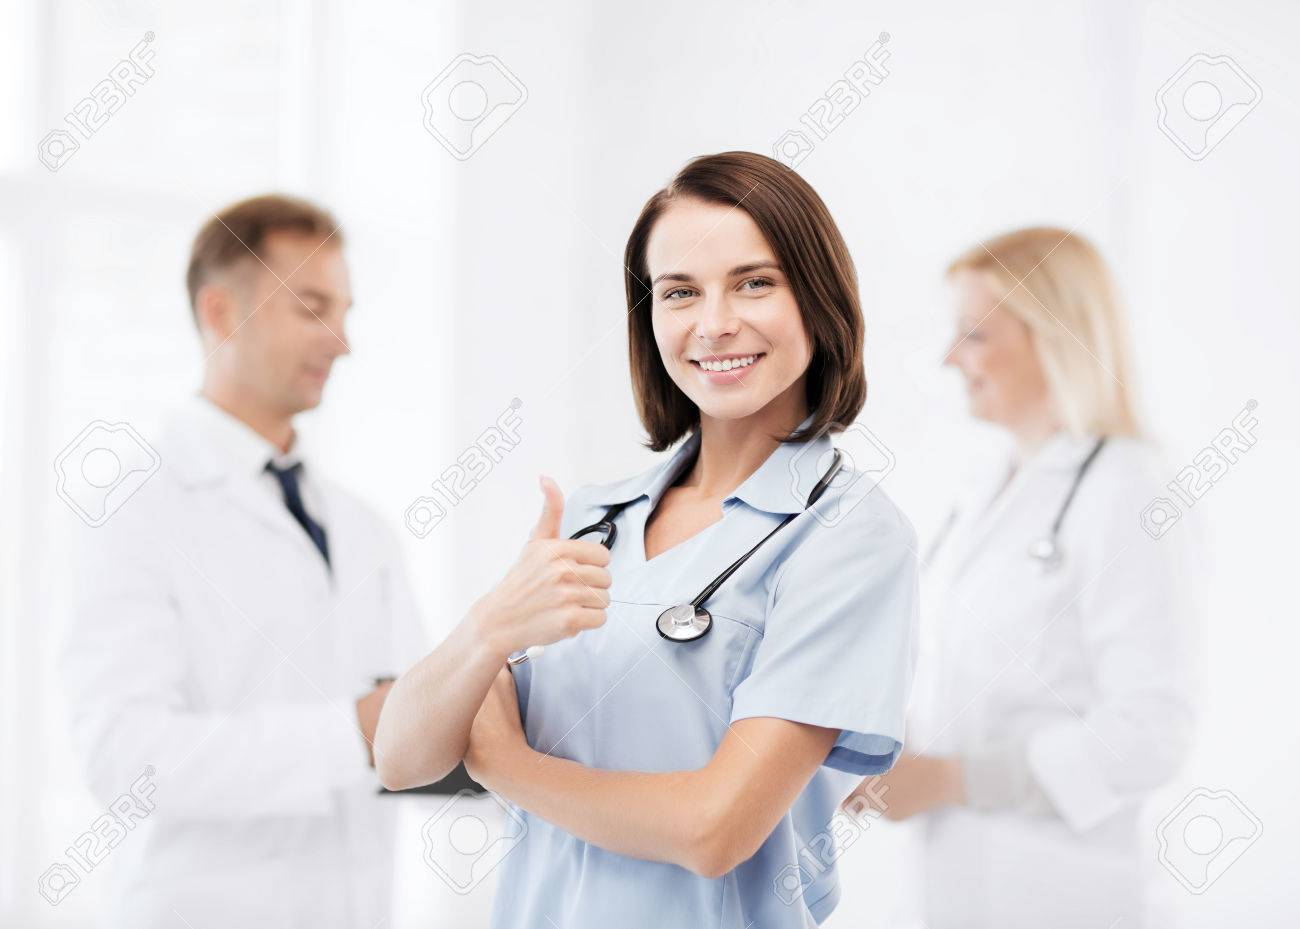 healthcare and medical concept - team of doctors showing thumbs up Stock Photo - 28897984